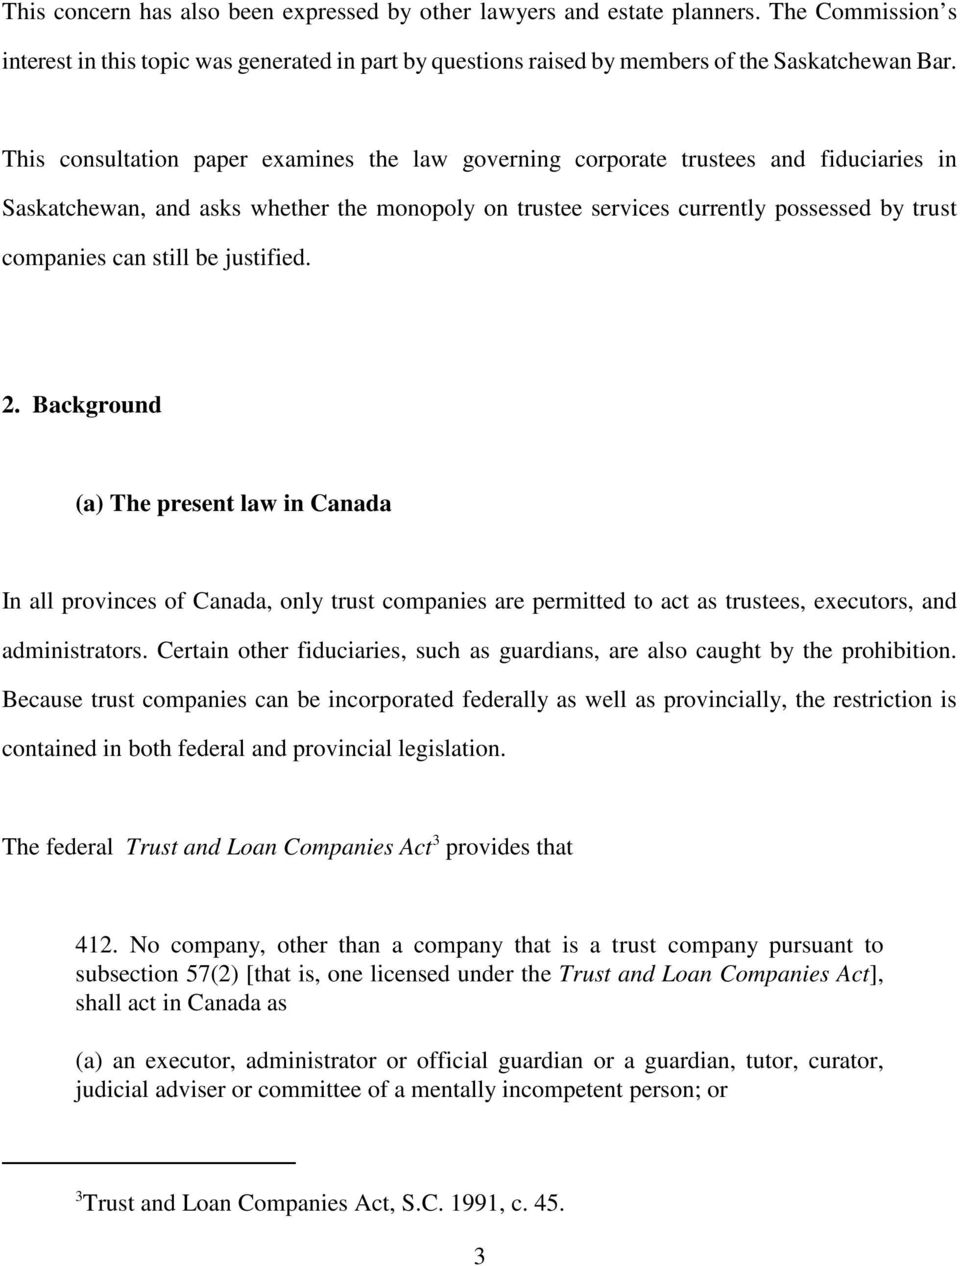 still be justified. 2. Background (a) The present law in Canada In all provinces of Canada, only trust companies are permitted to act as trustees, executors, and administrators.